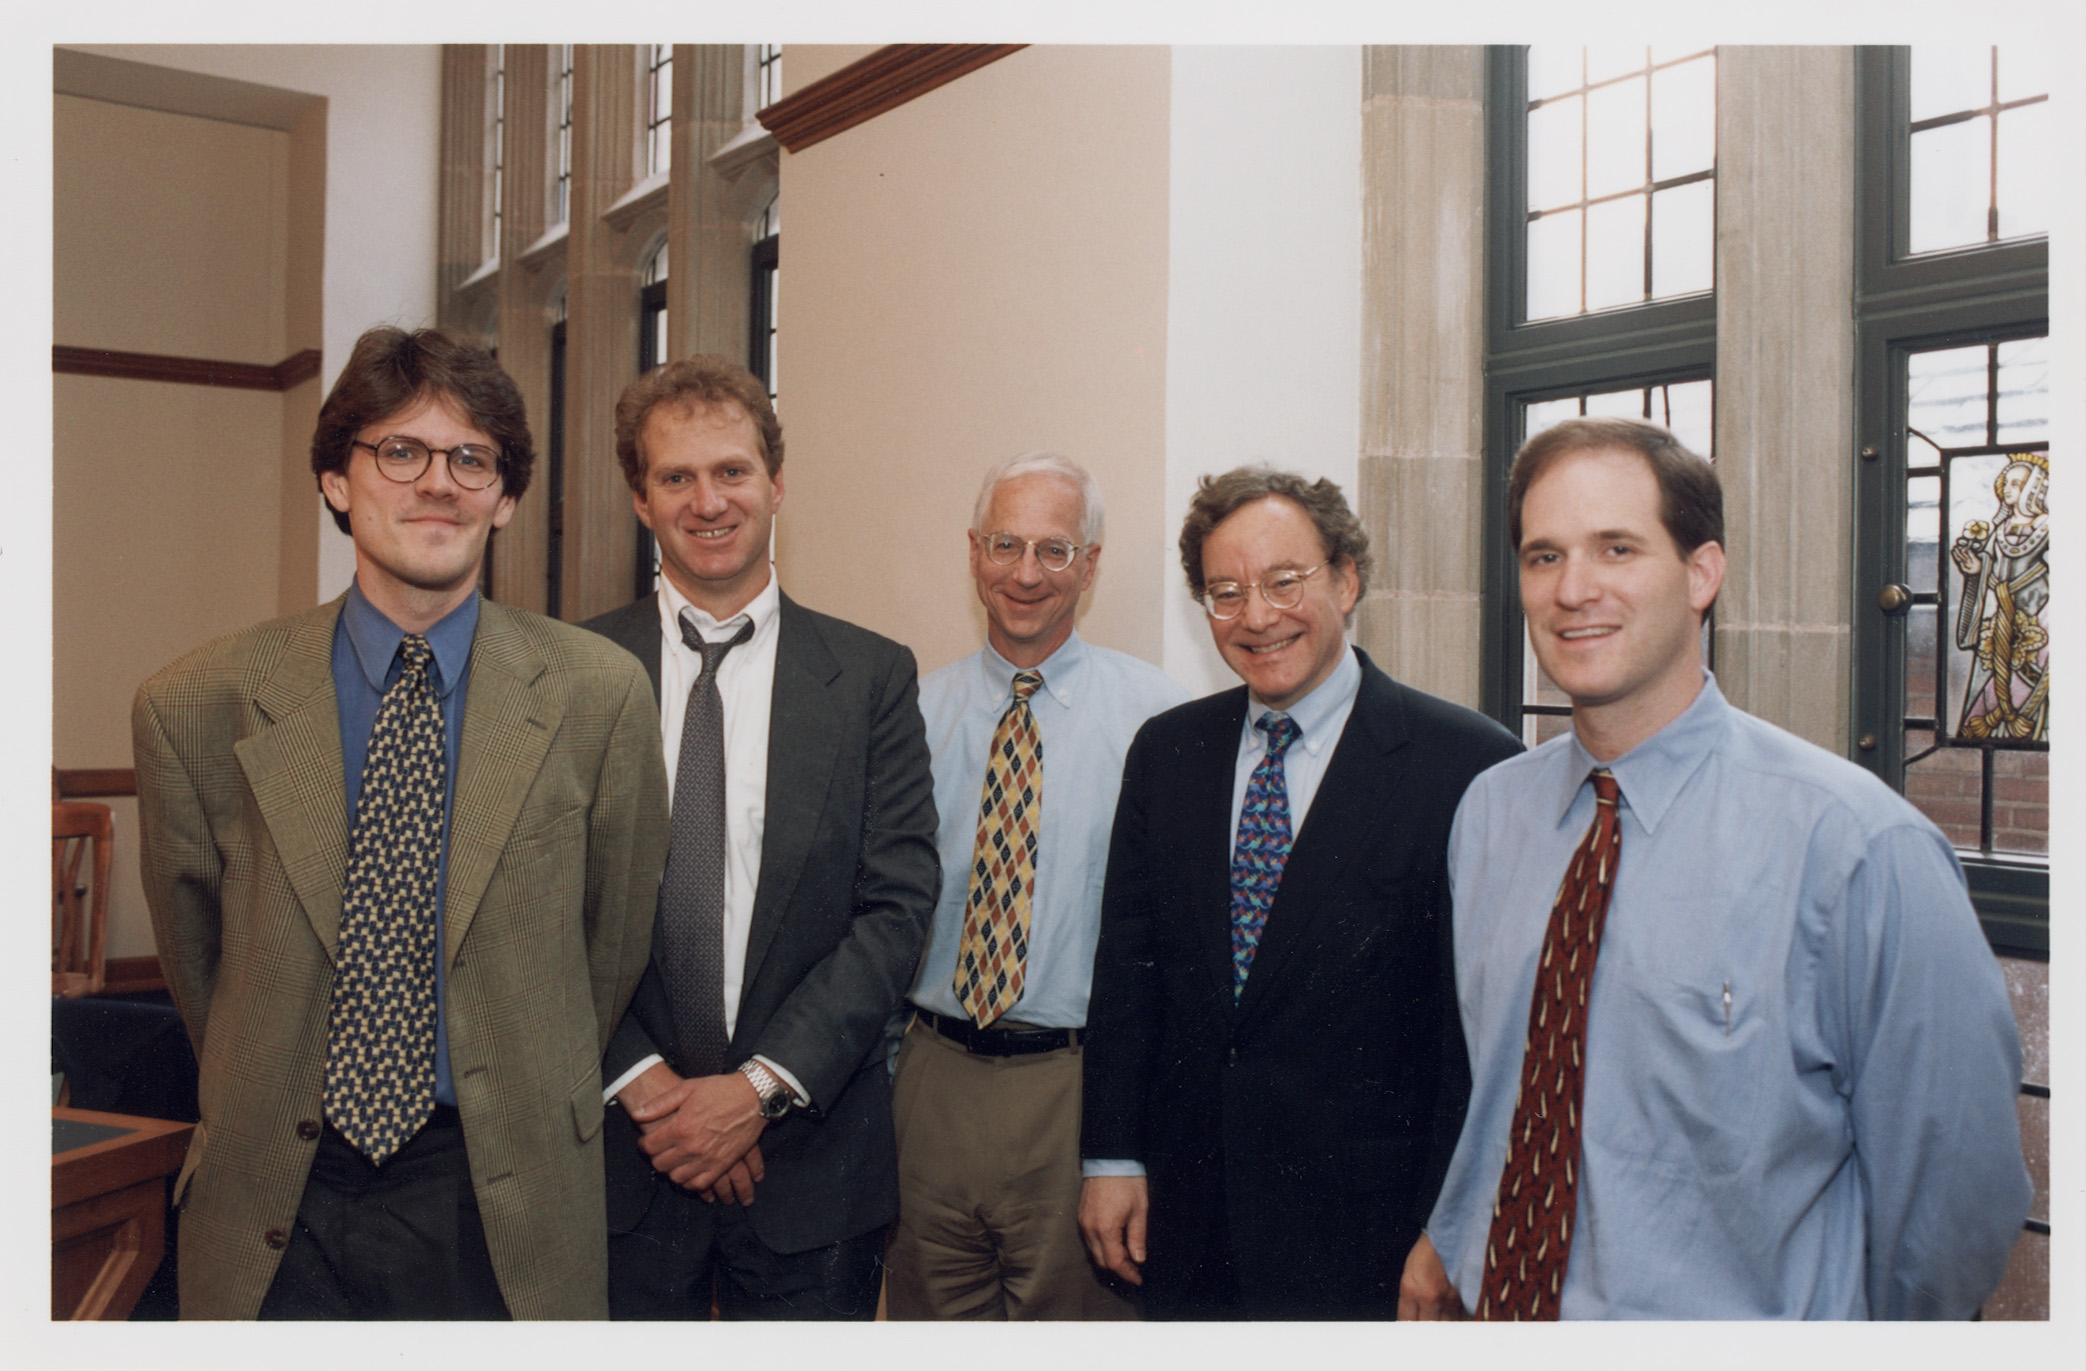 Harvard Law Prof. John Coates, Stanford Law Prof. Michael Klausner '81, YLS Prof. Alan Schwartz '64, Columbia Law Prof. Jeffrey Gordon, and NYU Law Prof. Robert Daines '92